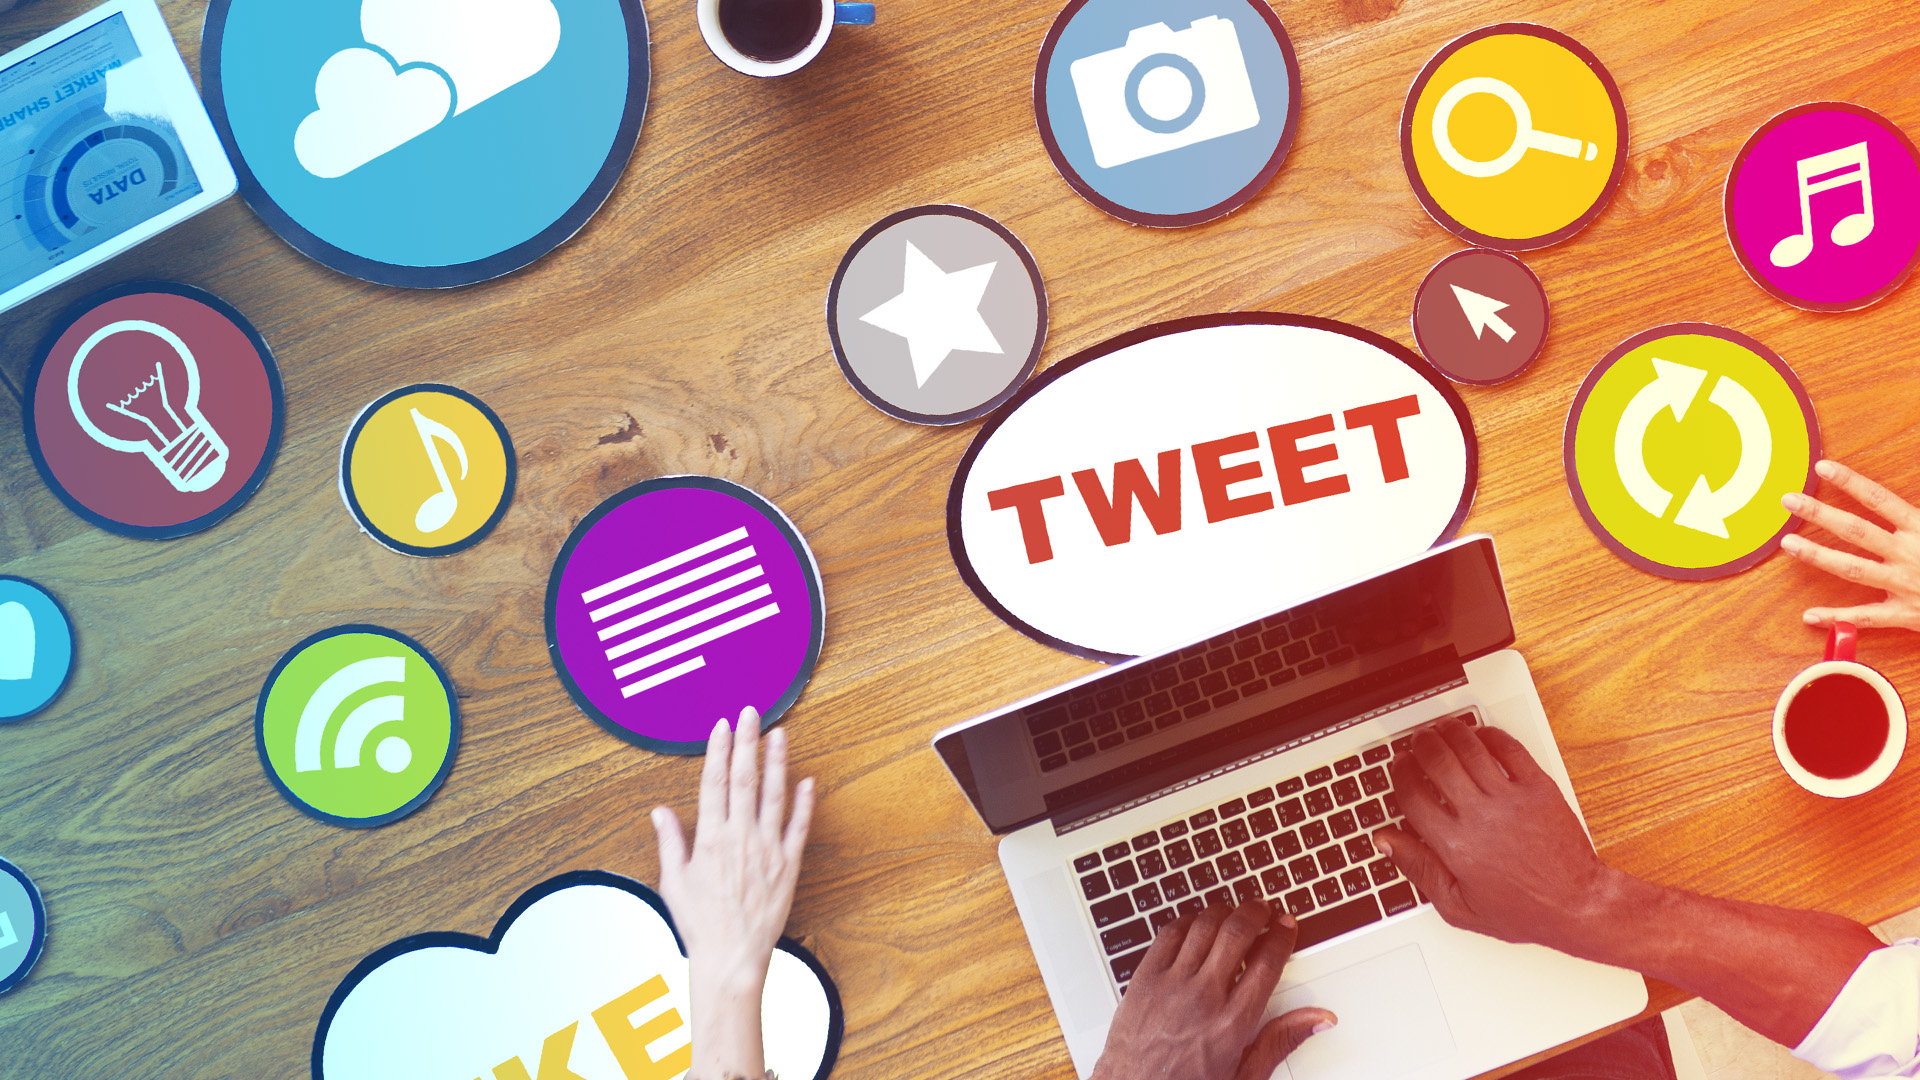 A list of the best free social media management software and tools that are essential for online marketing. From scheduling and monitoring, to image editing and URL tracking, the list covers all important aspects of social media management